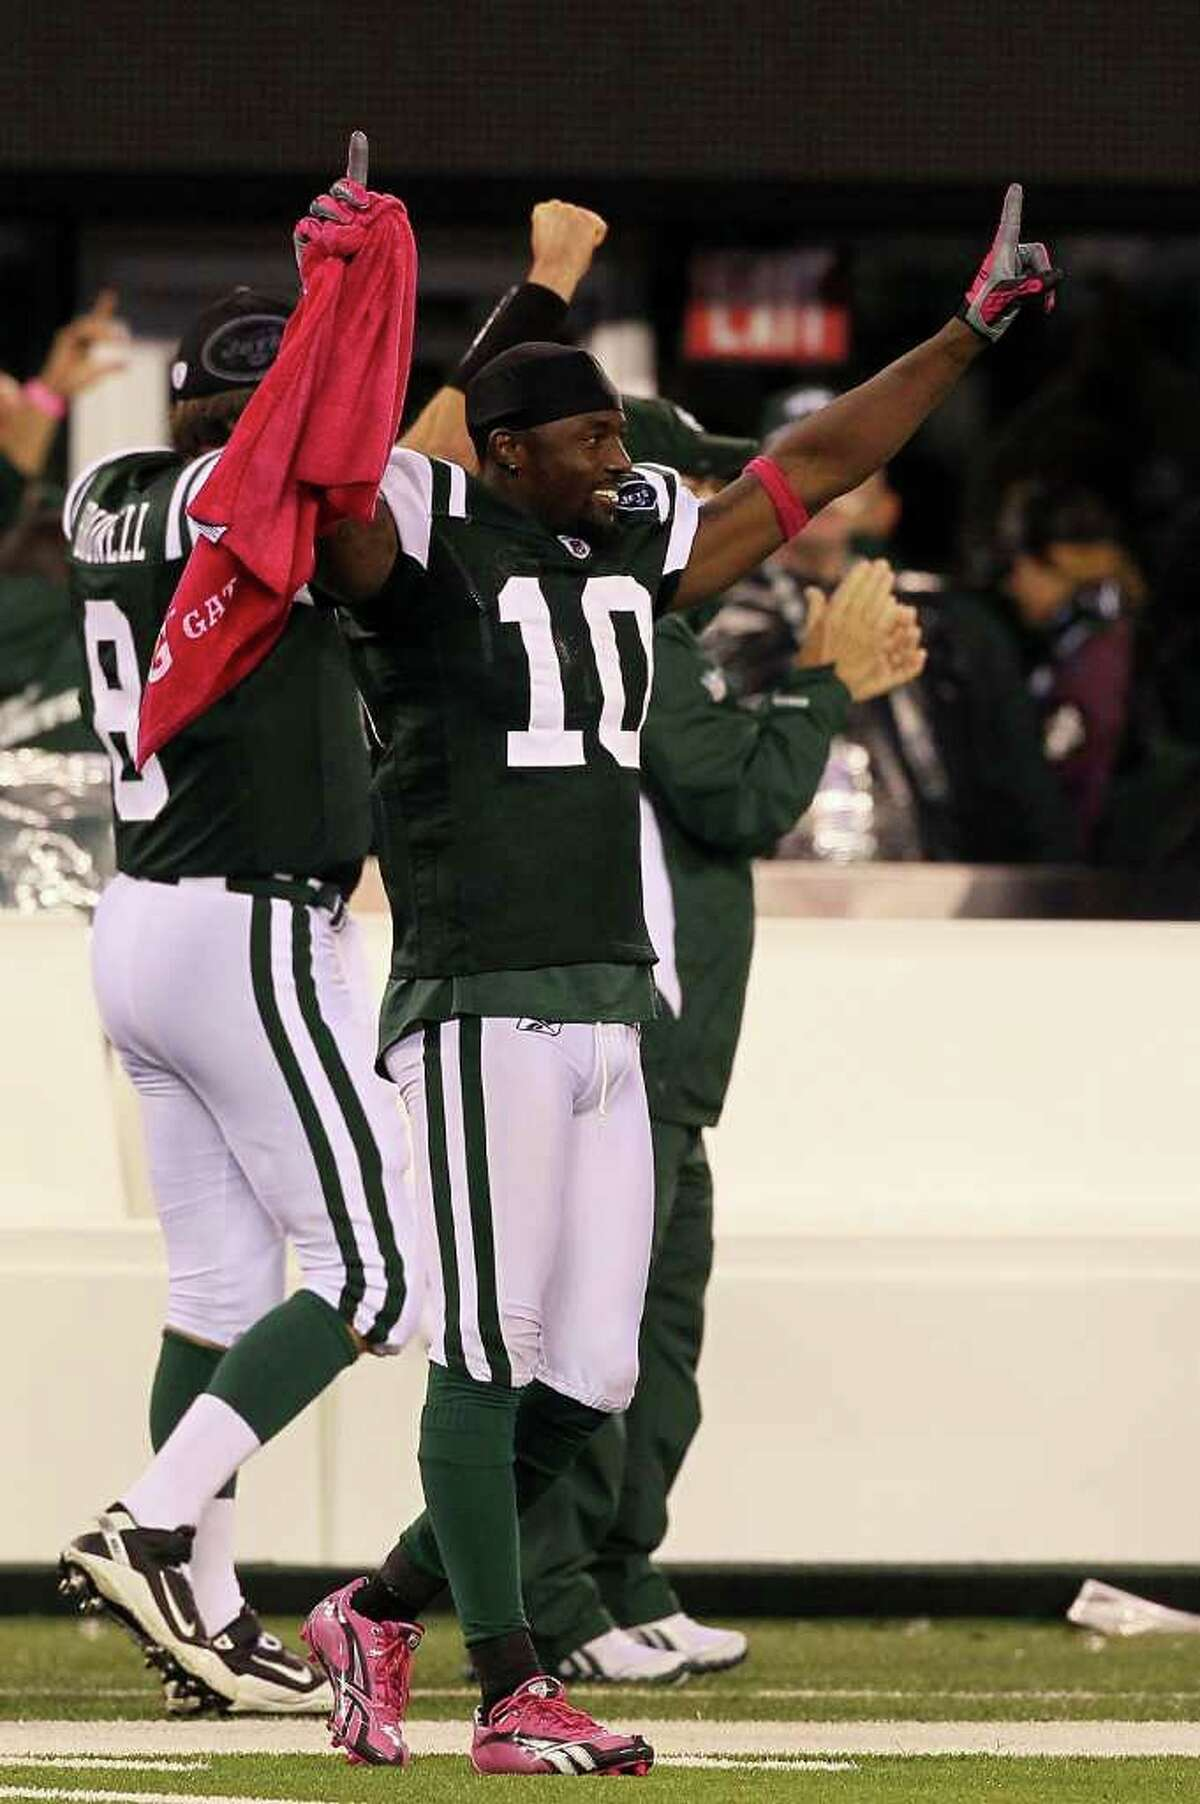 EAST RUTHERFORD, NJ - OCTOBER 11: Santonio Holmes #10 of the New York Jets celebrates as Dwight Lowery #26 scored on a 26-yard interception return for a touchdown in the fourth quarter against the Minnesota Vikings at New Meadowlands Stadium on October 11, 2010 in East Rutherford, New Jersey. (Photo by Jim McIsaac/Getty Images) *** Local Caption *** Santonio Holmes